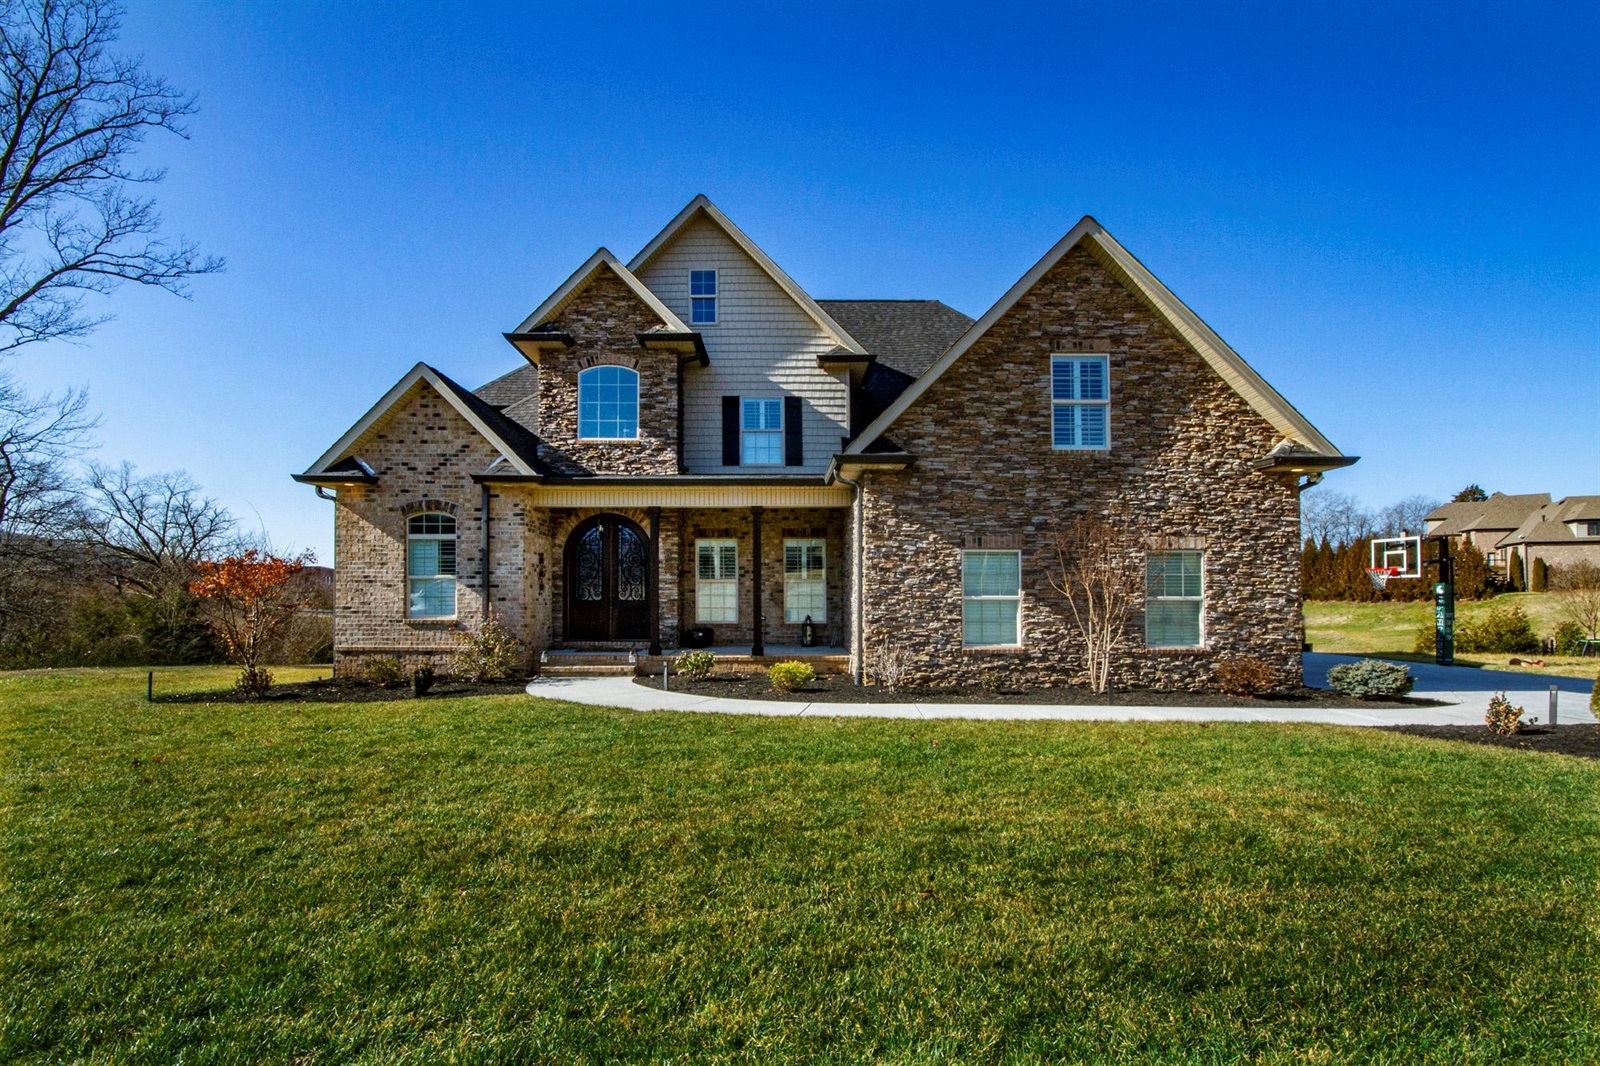 2345 Brooke Willow Blvd, Knoxville, TN 37932